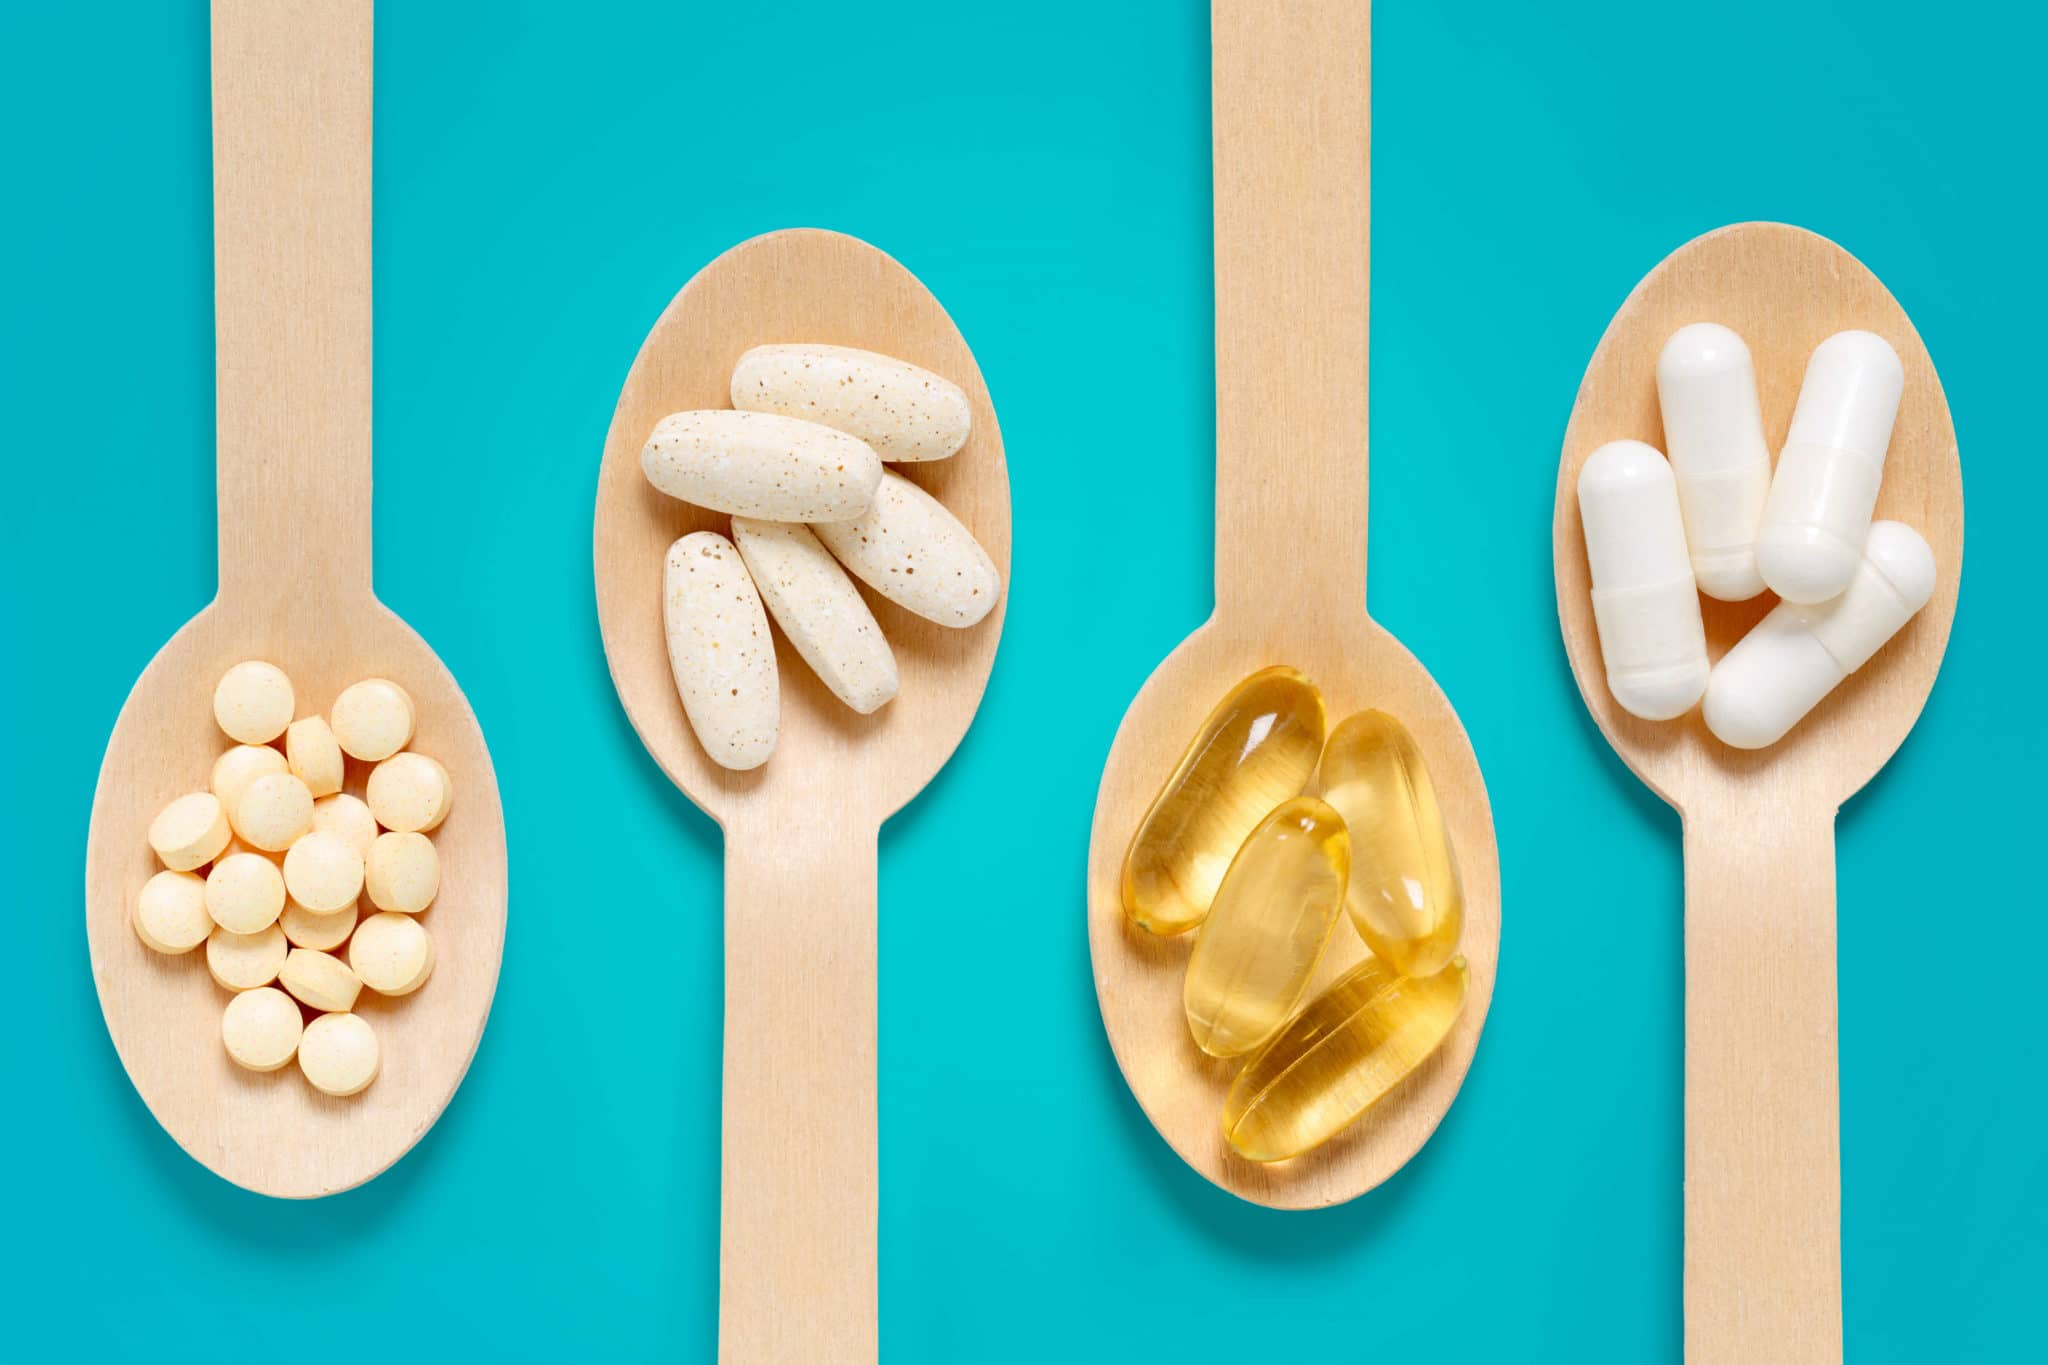 best supplements for nerve pain, The Best Supplements for Nerve Pain